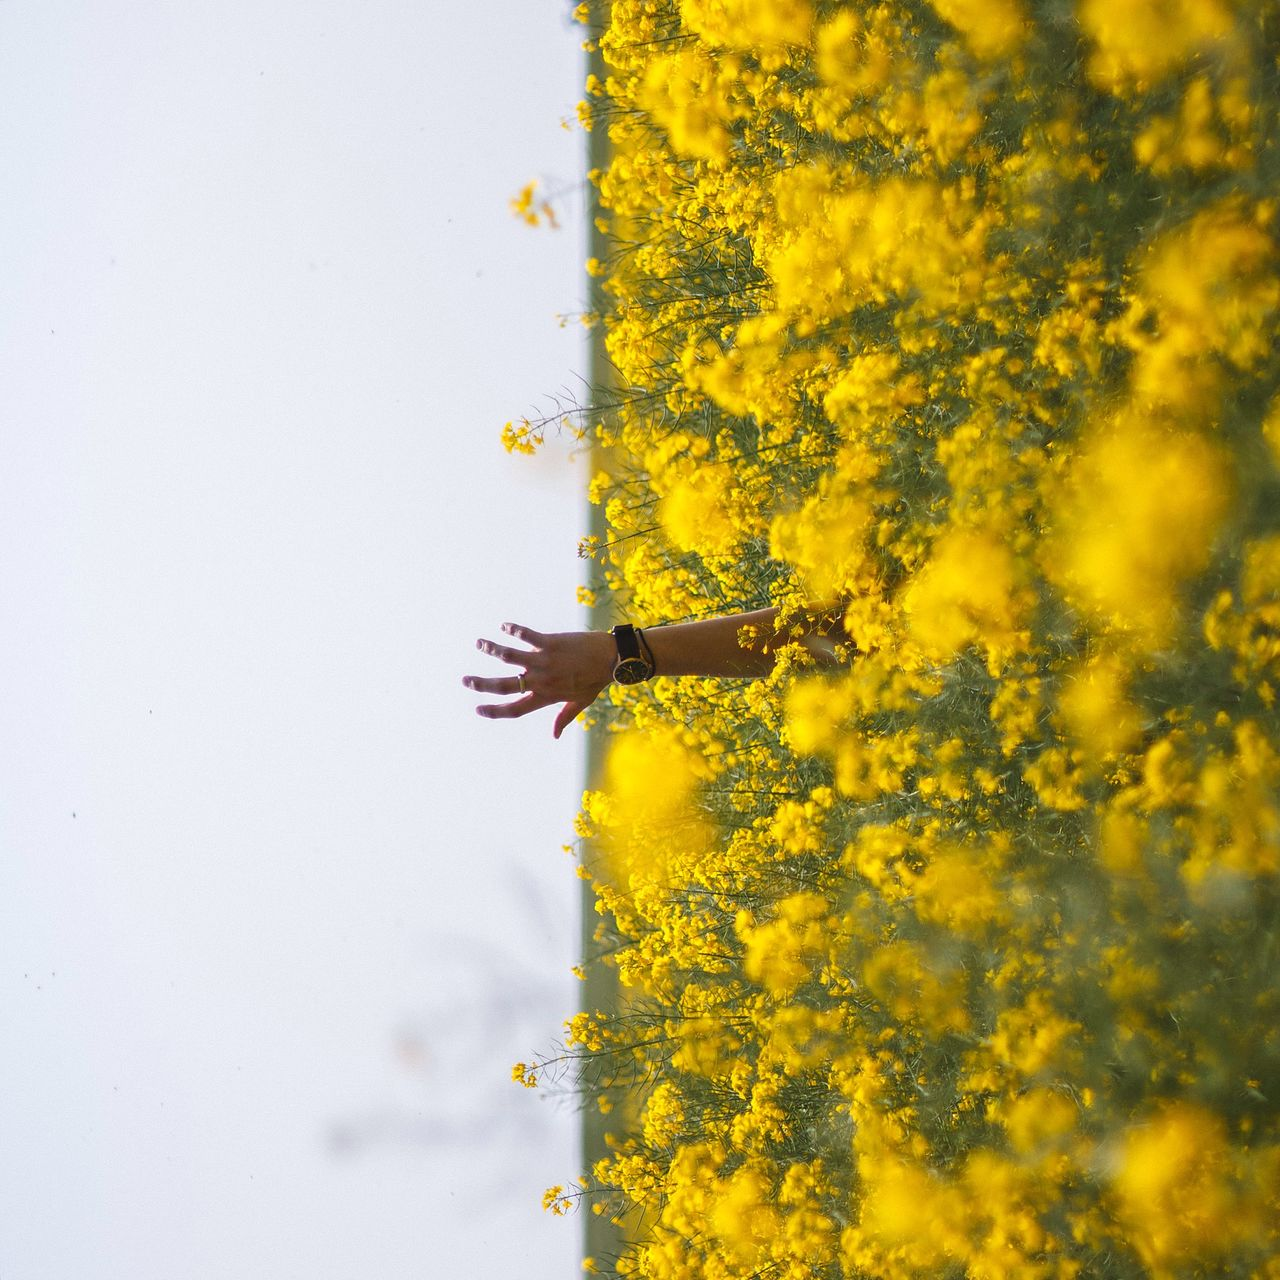 Cropped image of man hand amidst yellow flowering plants against clear sky